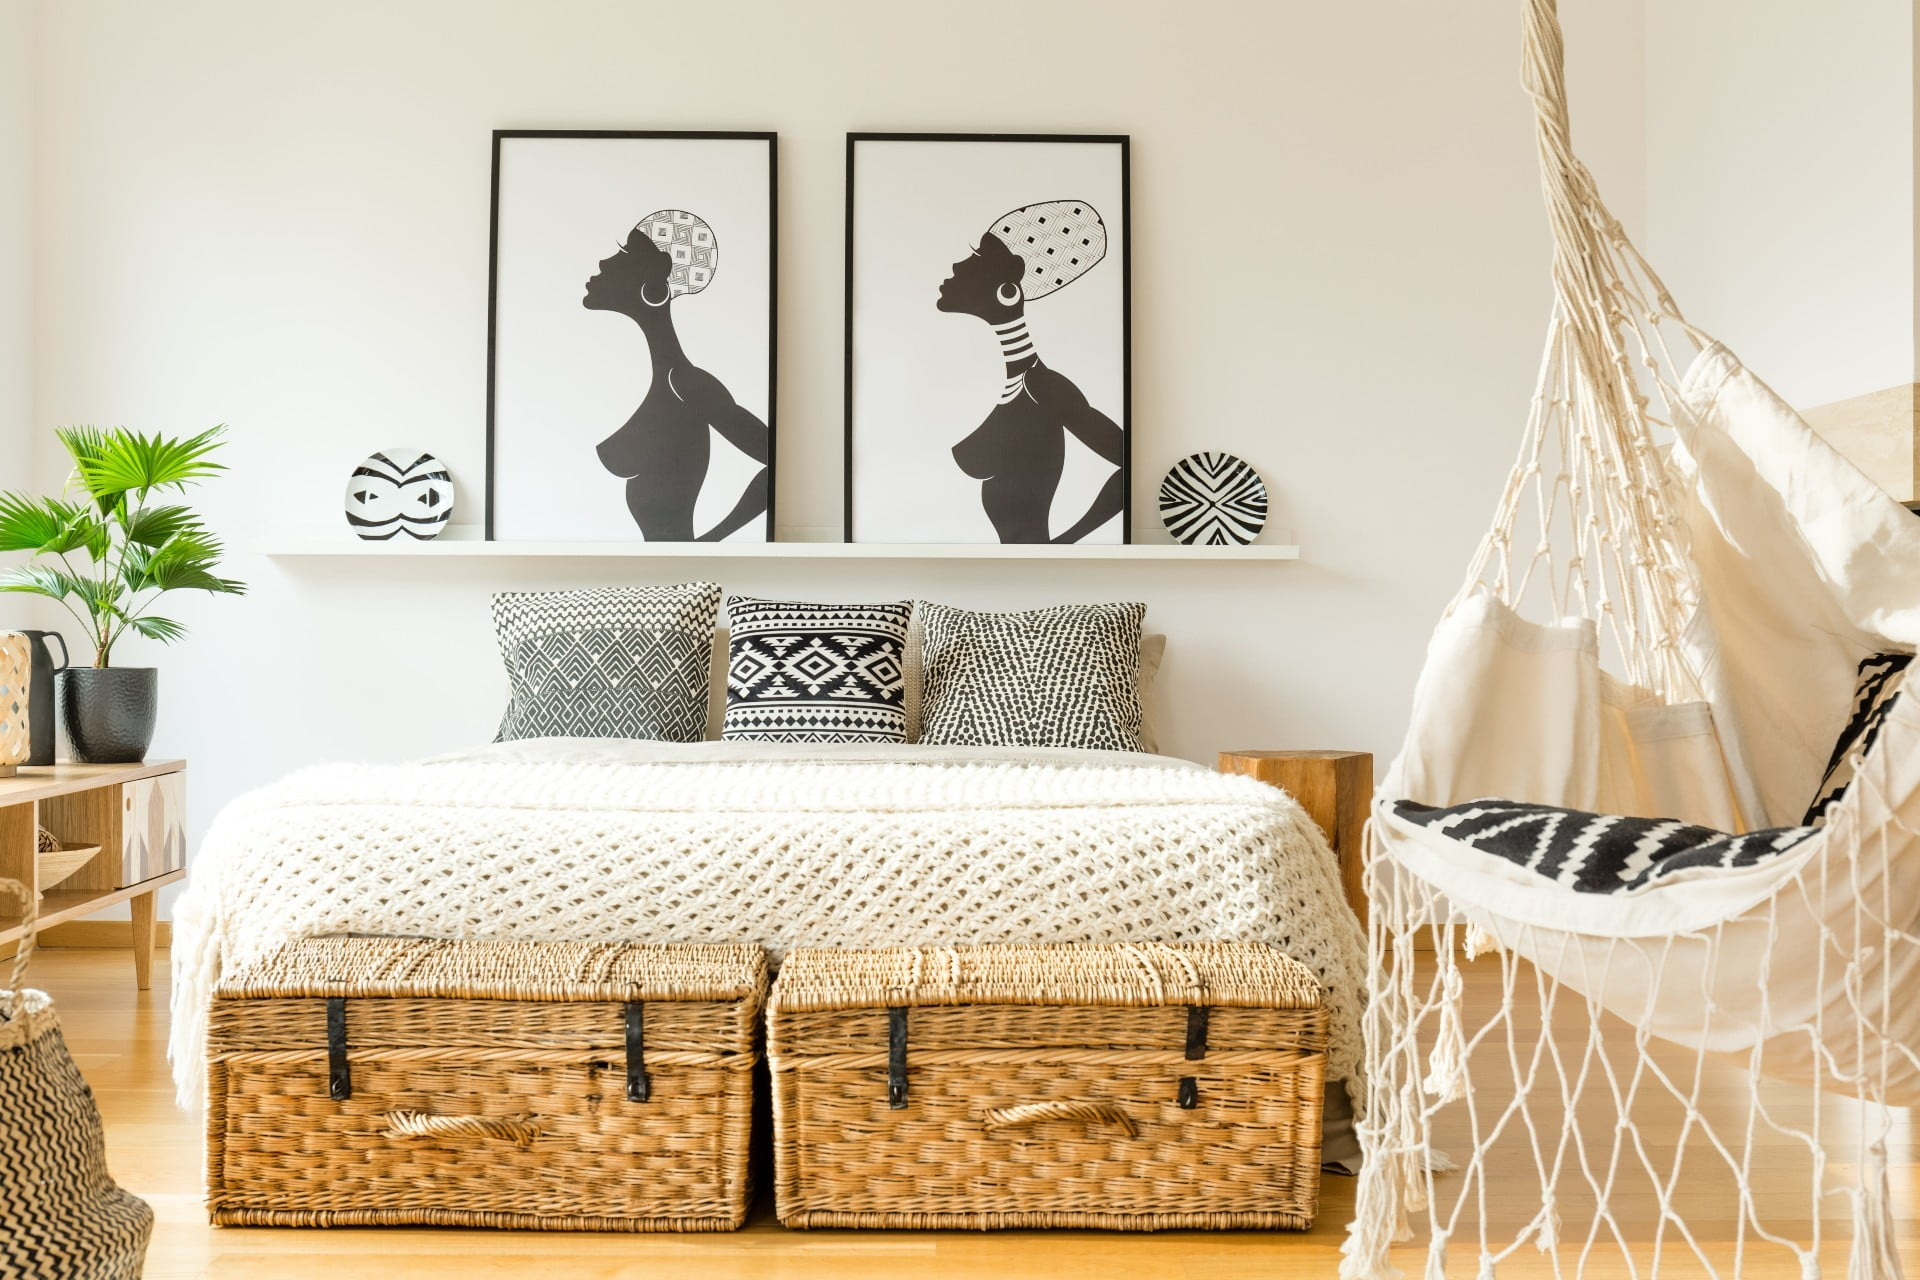 How to mix and match bedroom furniture the right way   21Oak